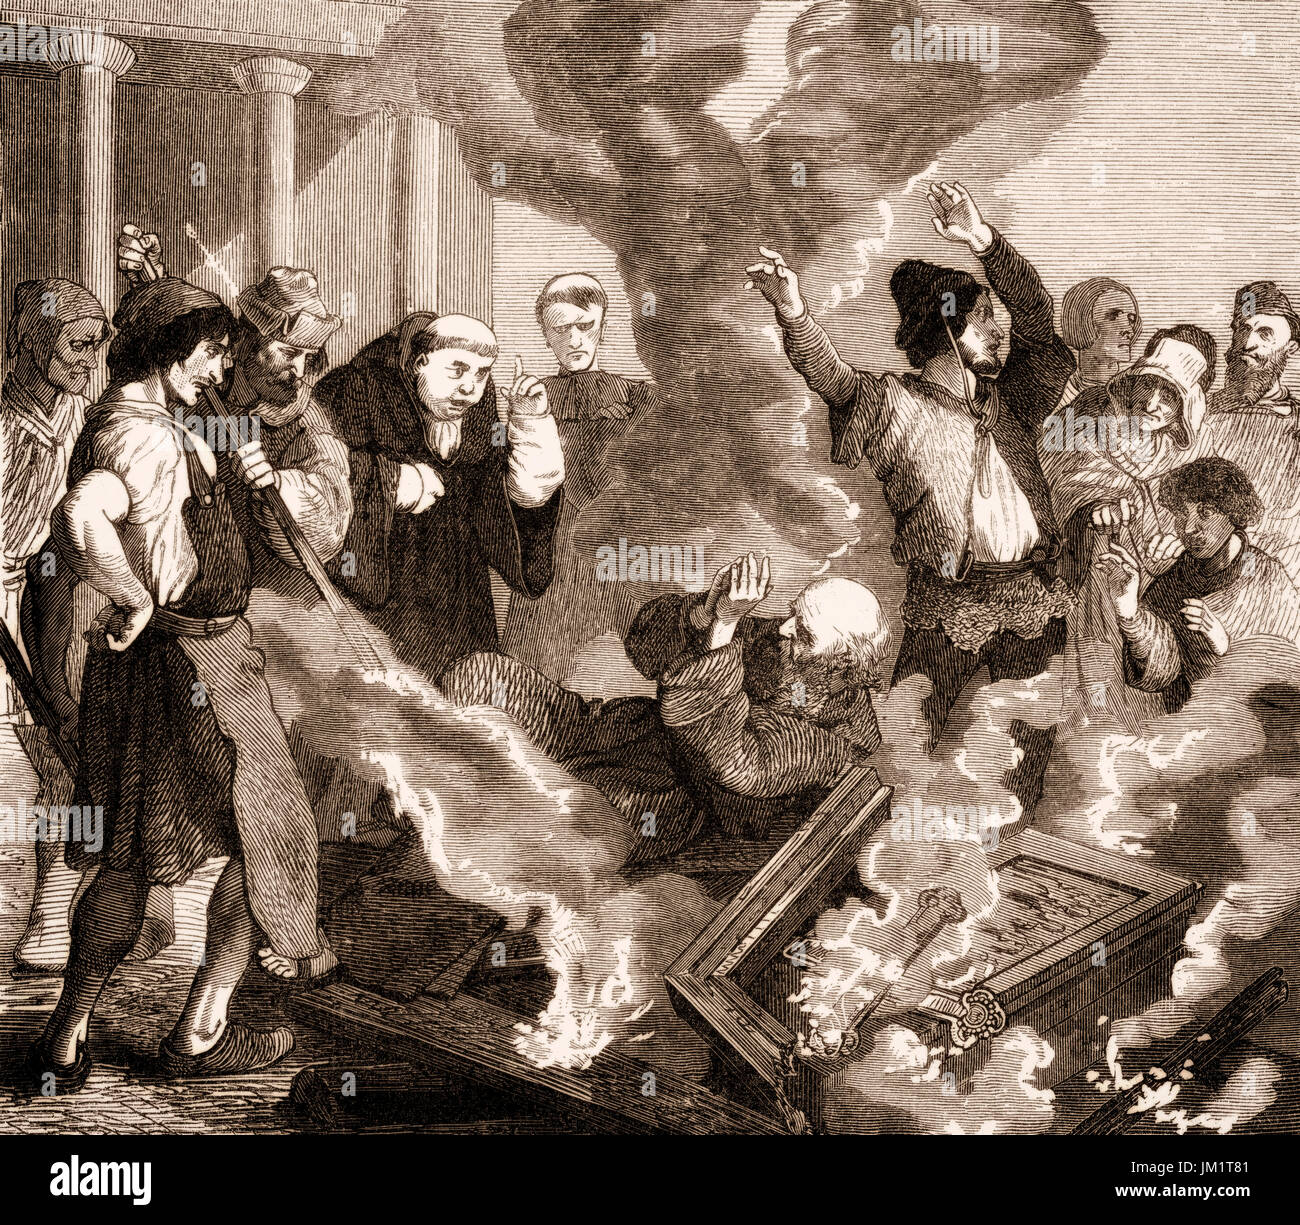 Peter of Bruys, Pierre De Bruys or Peter de Bruis;  1117 – c.1131, a popular French religious teacher, burning in his own bonfire - Stock Image